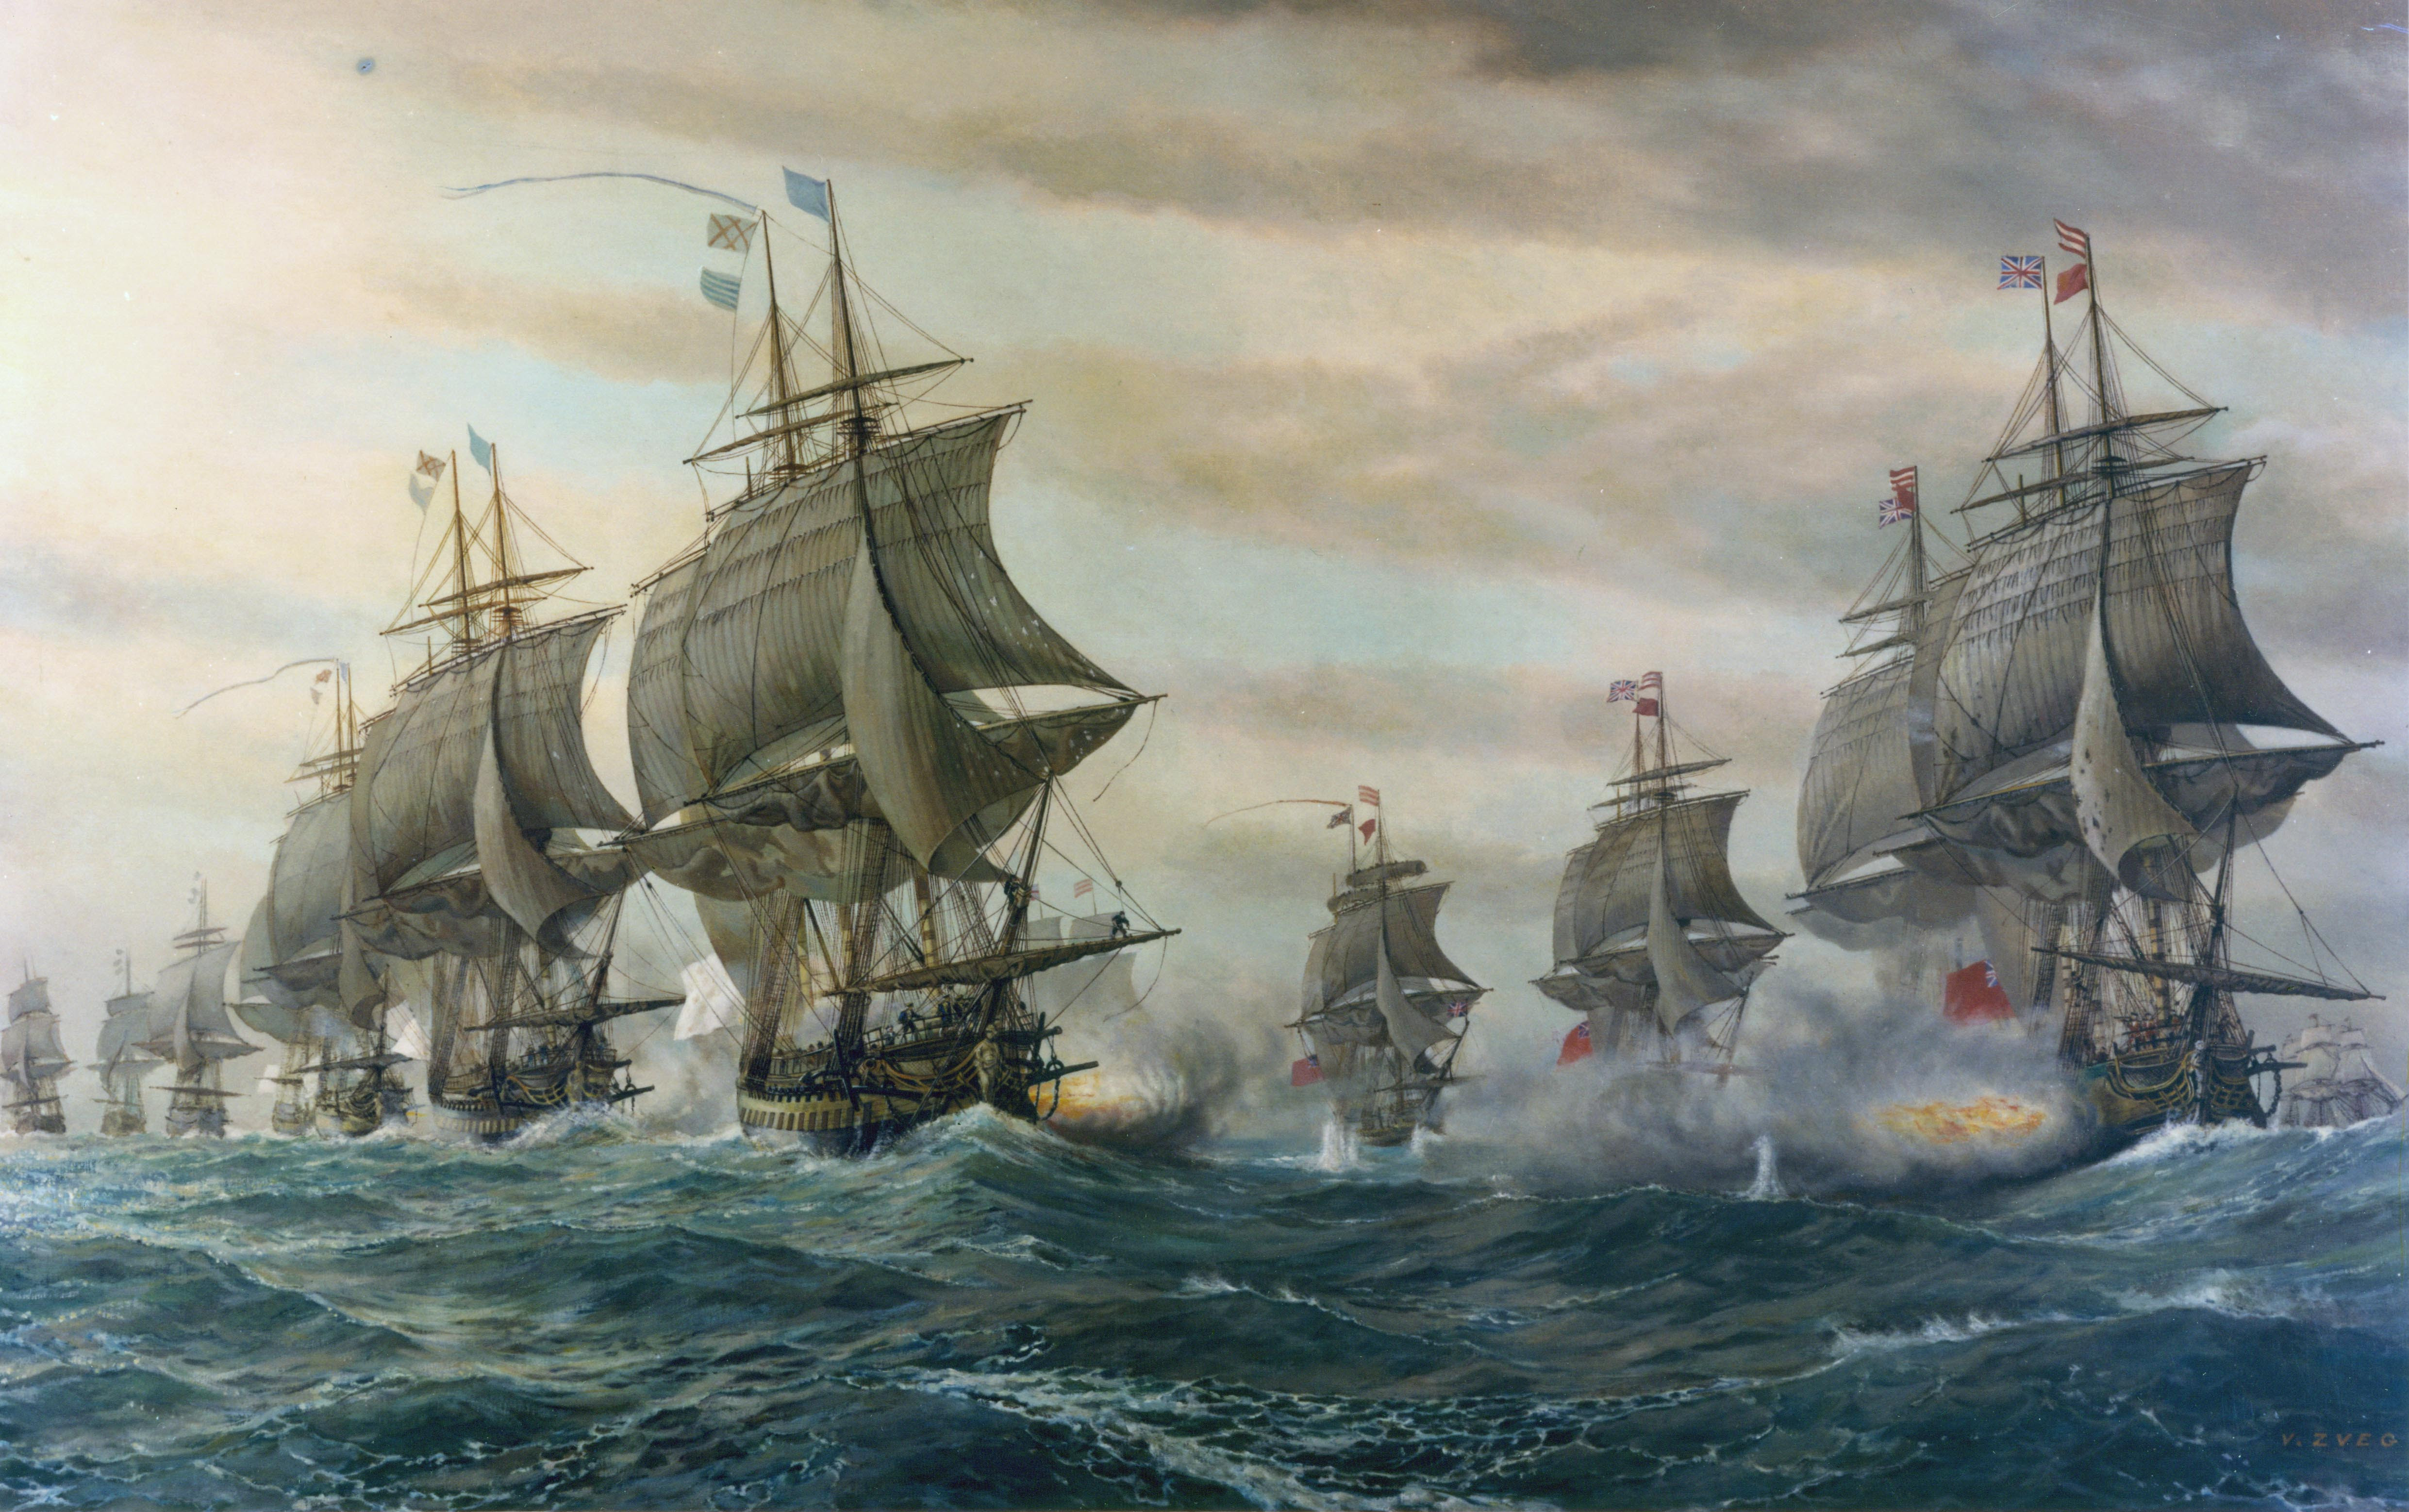 V. Zveg: Depiction of the Second Battle of the Virginia Capes